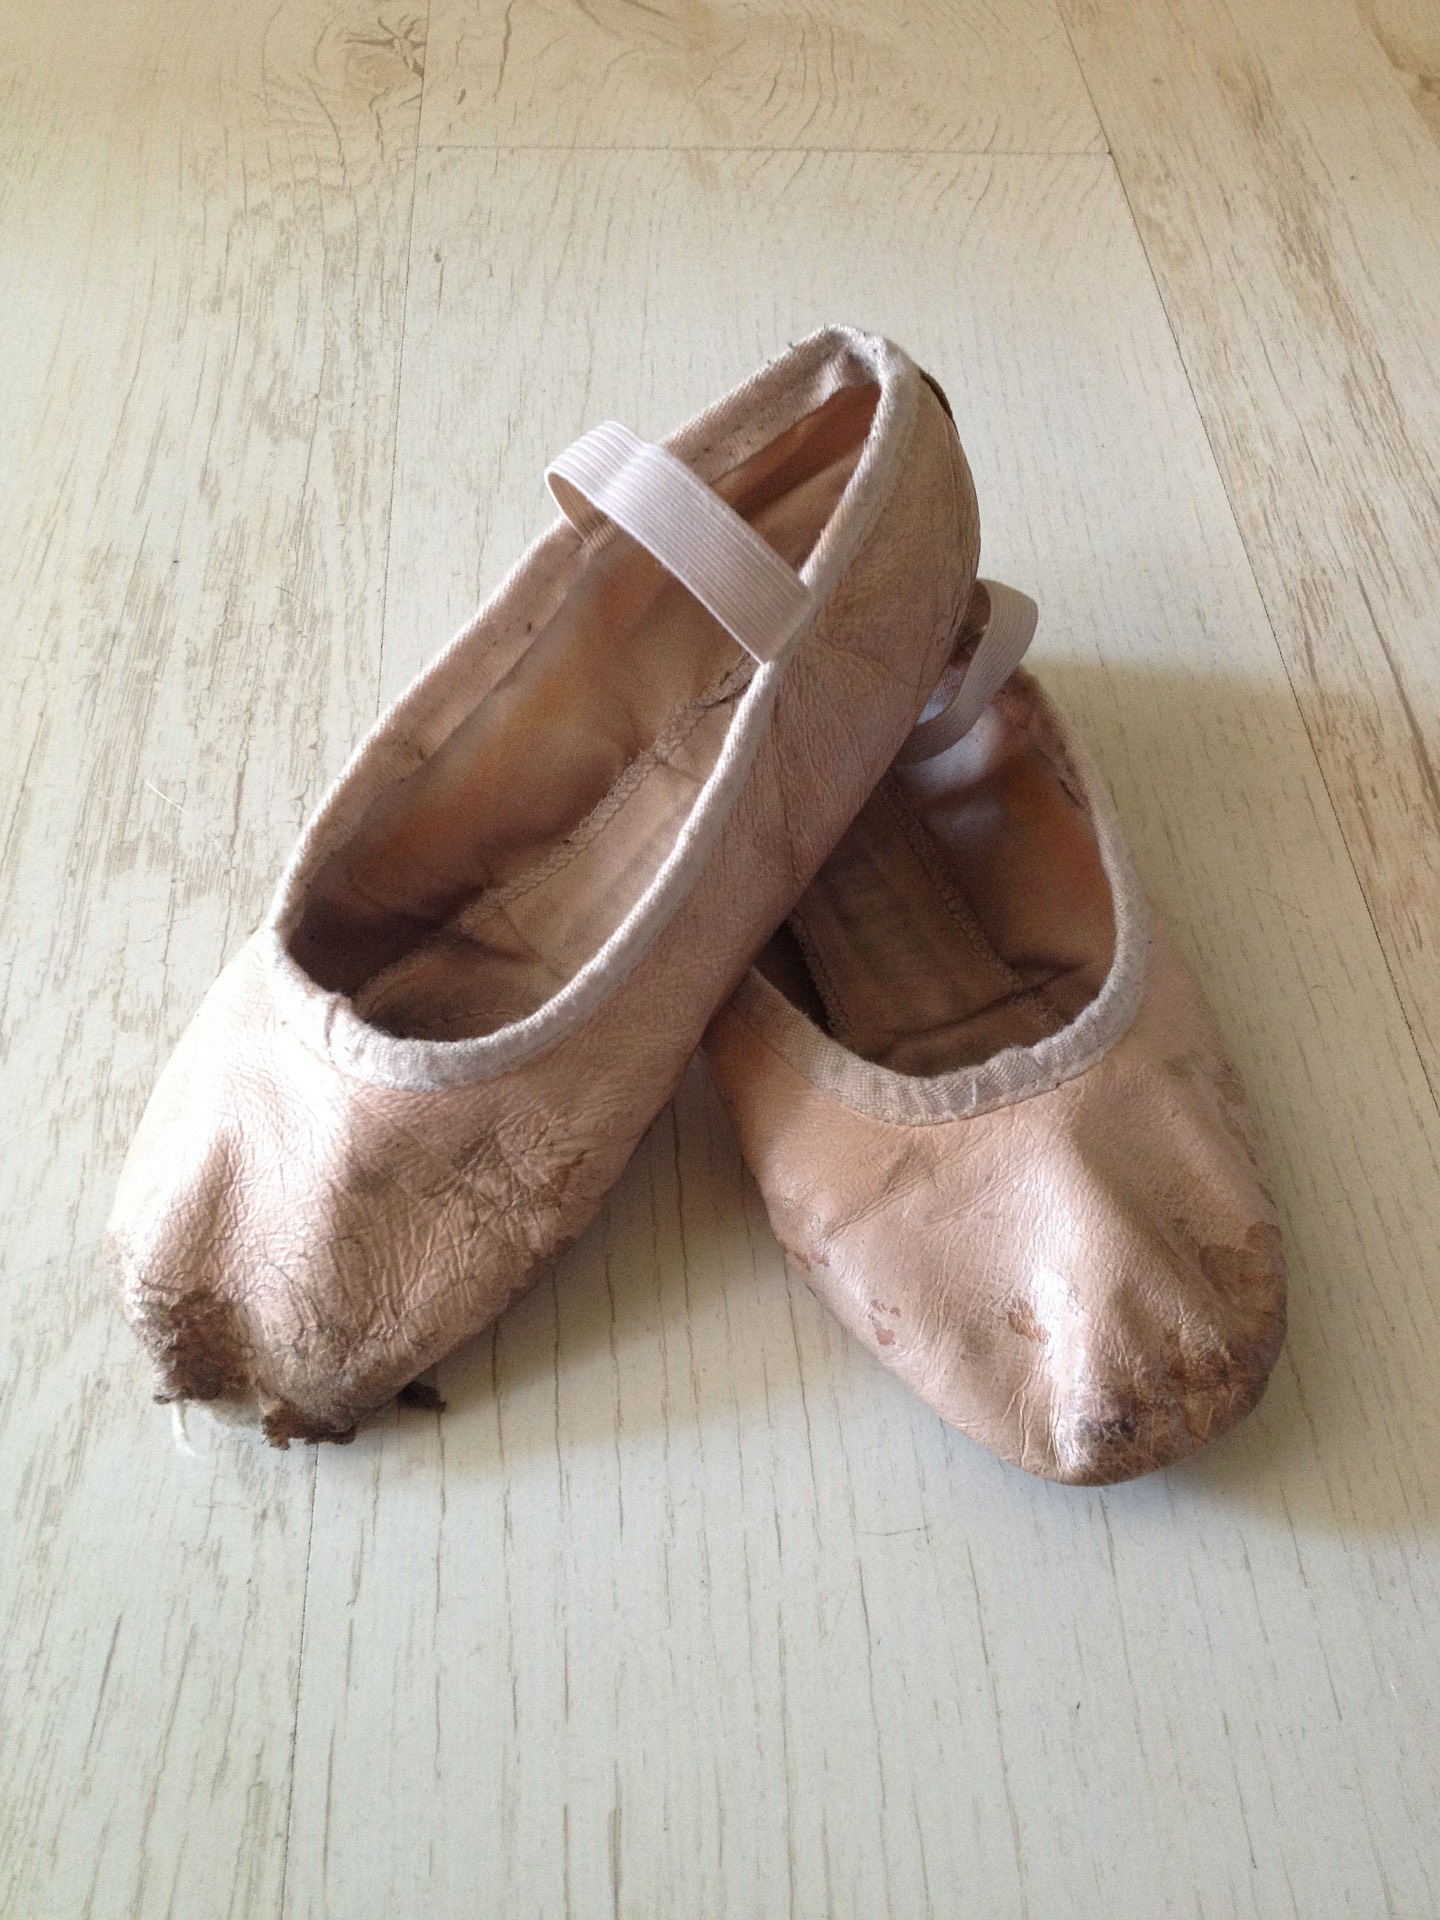 An image of worn pair of pink ballet shoes with a whole in the right foot.